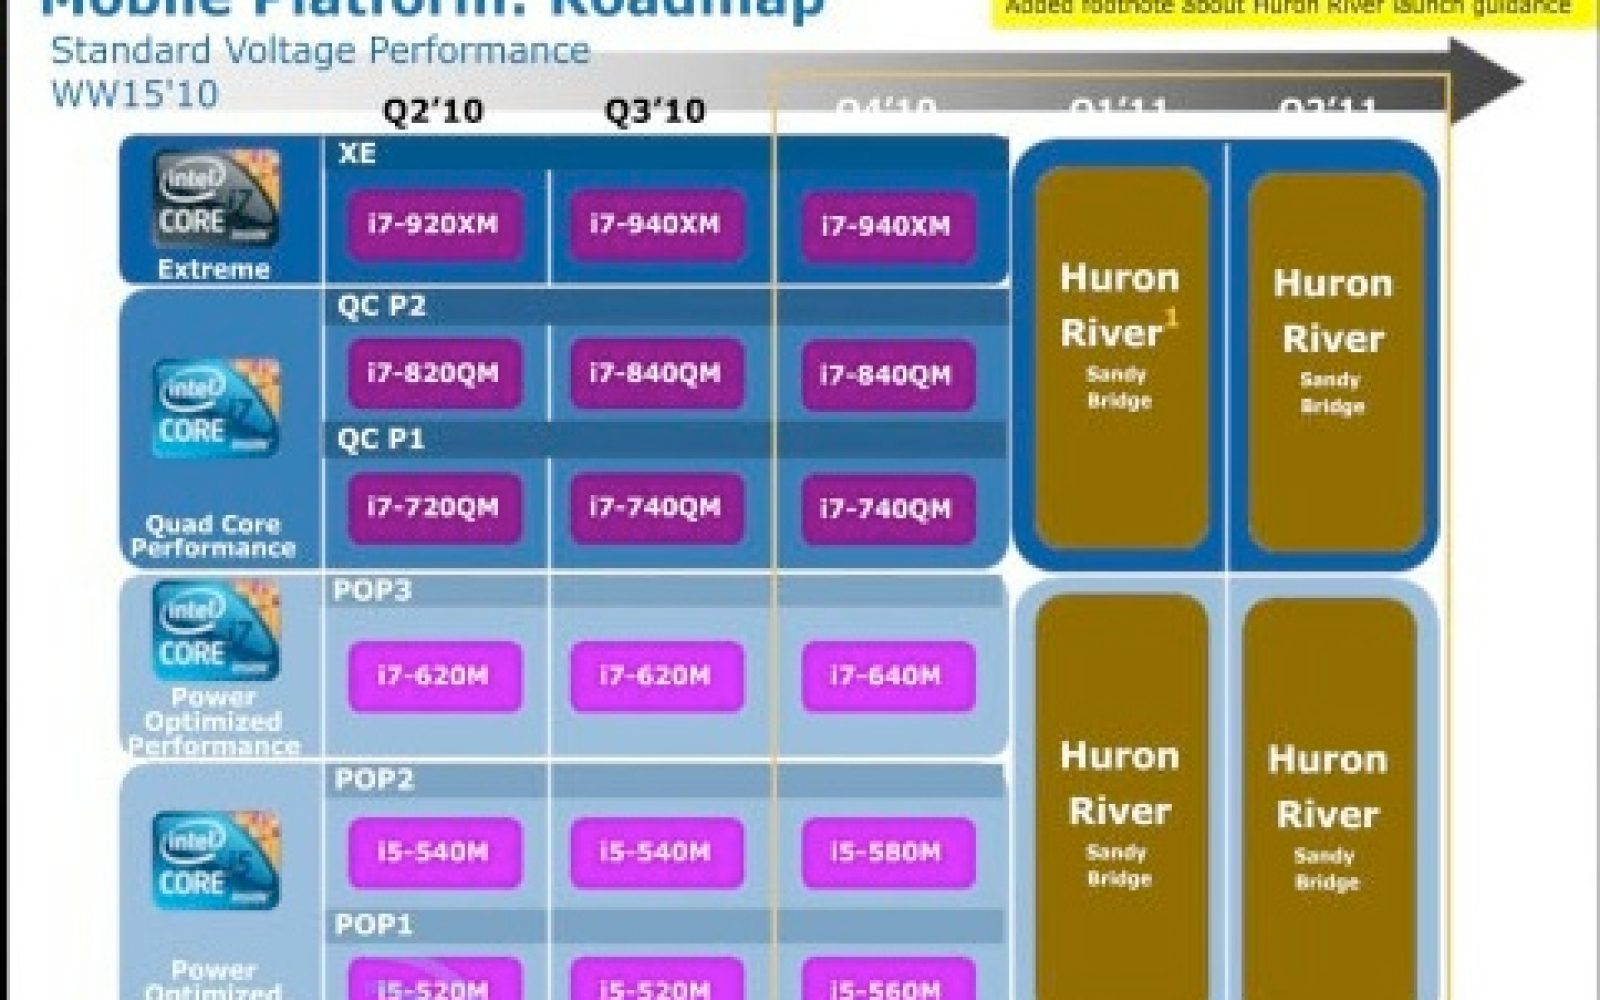 Intel processor map hints MacBook Pro chip upgrades - 9to5Mac on networking map, samsung map, intel core, hard drive map,